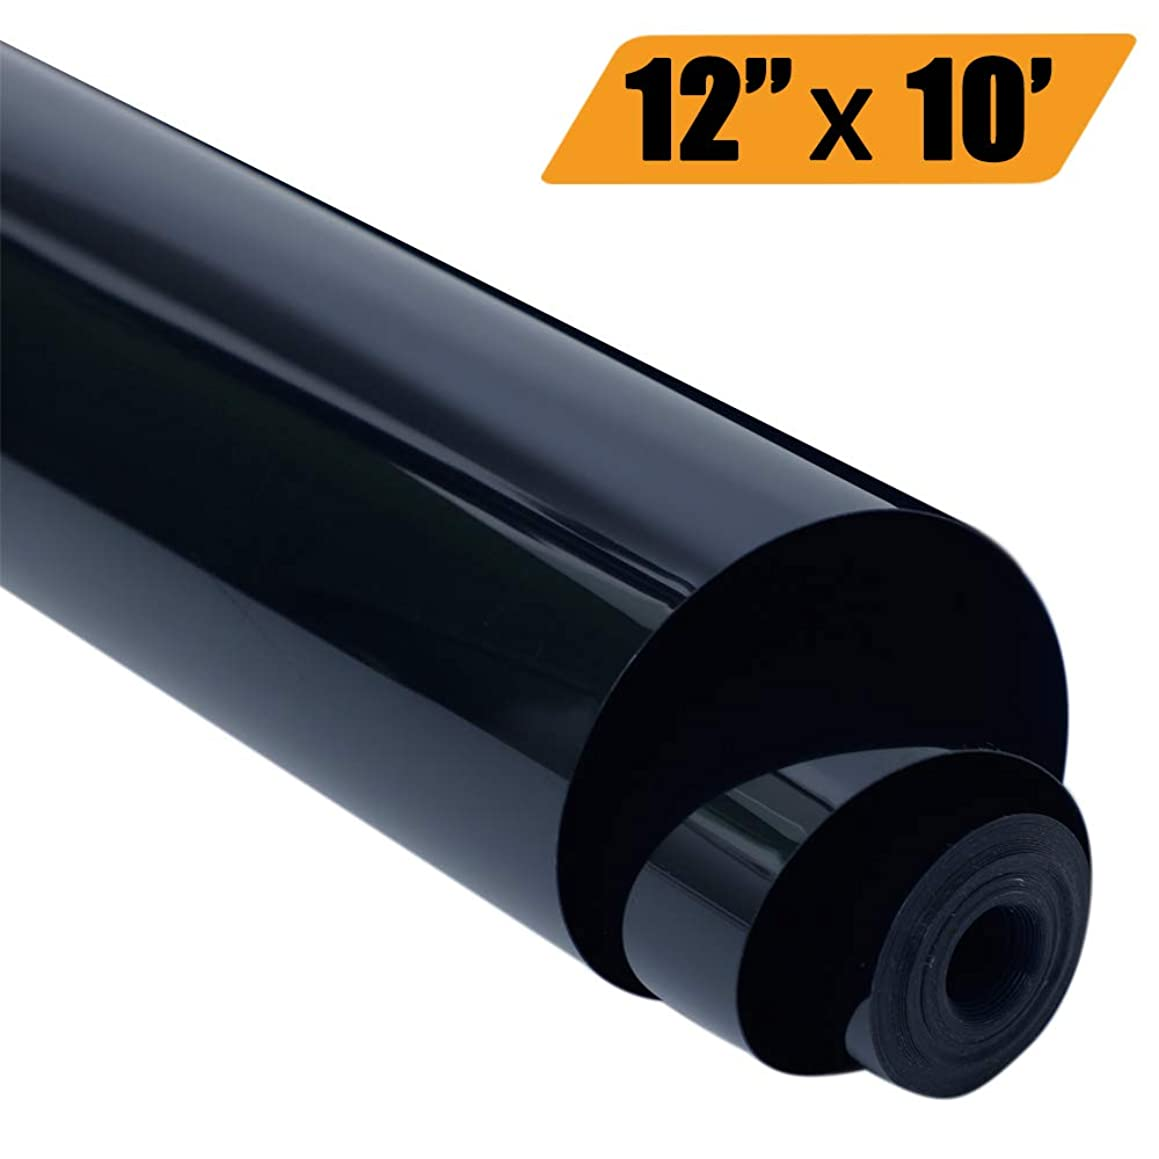 EATOP HTV Heat Transfer Vinyl, Easy to Weed Iron On Vinyl for T-Shirts 12'' x 10' Rolls (Black) dhwun24352